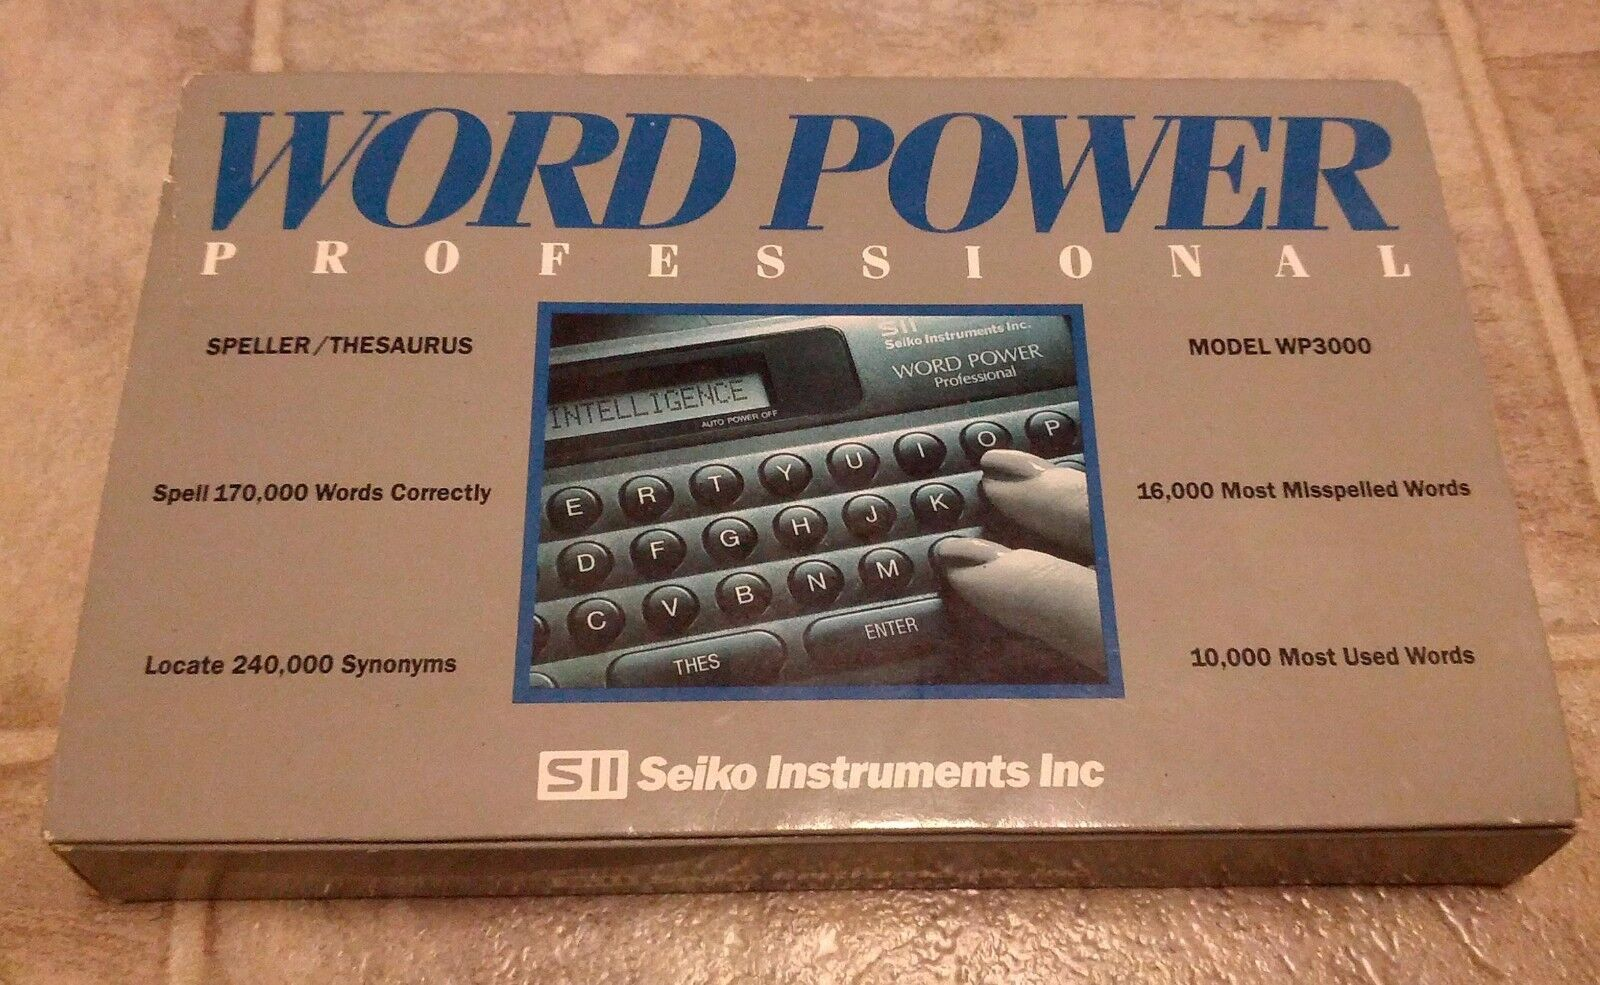 Seiko SII Power Professional Dictionary Thesaurus WP-3000